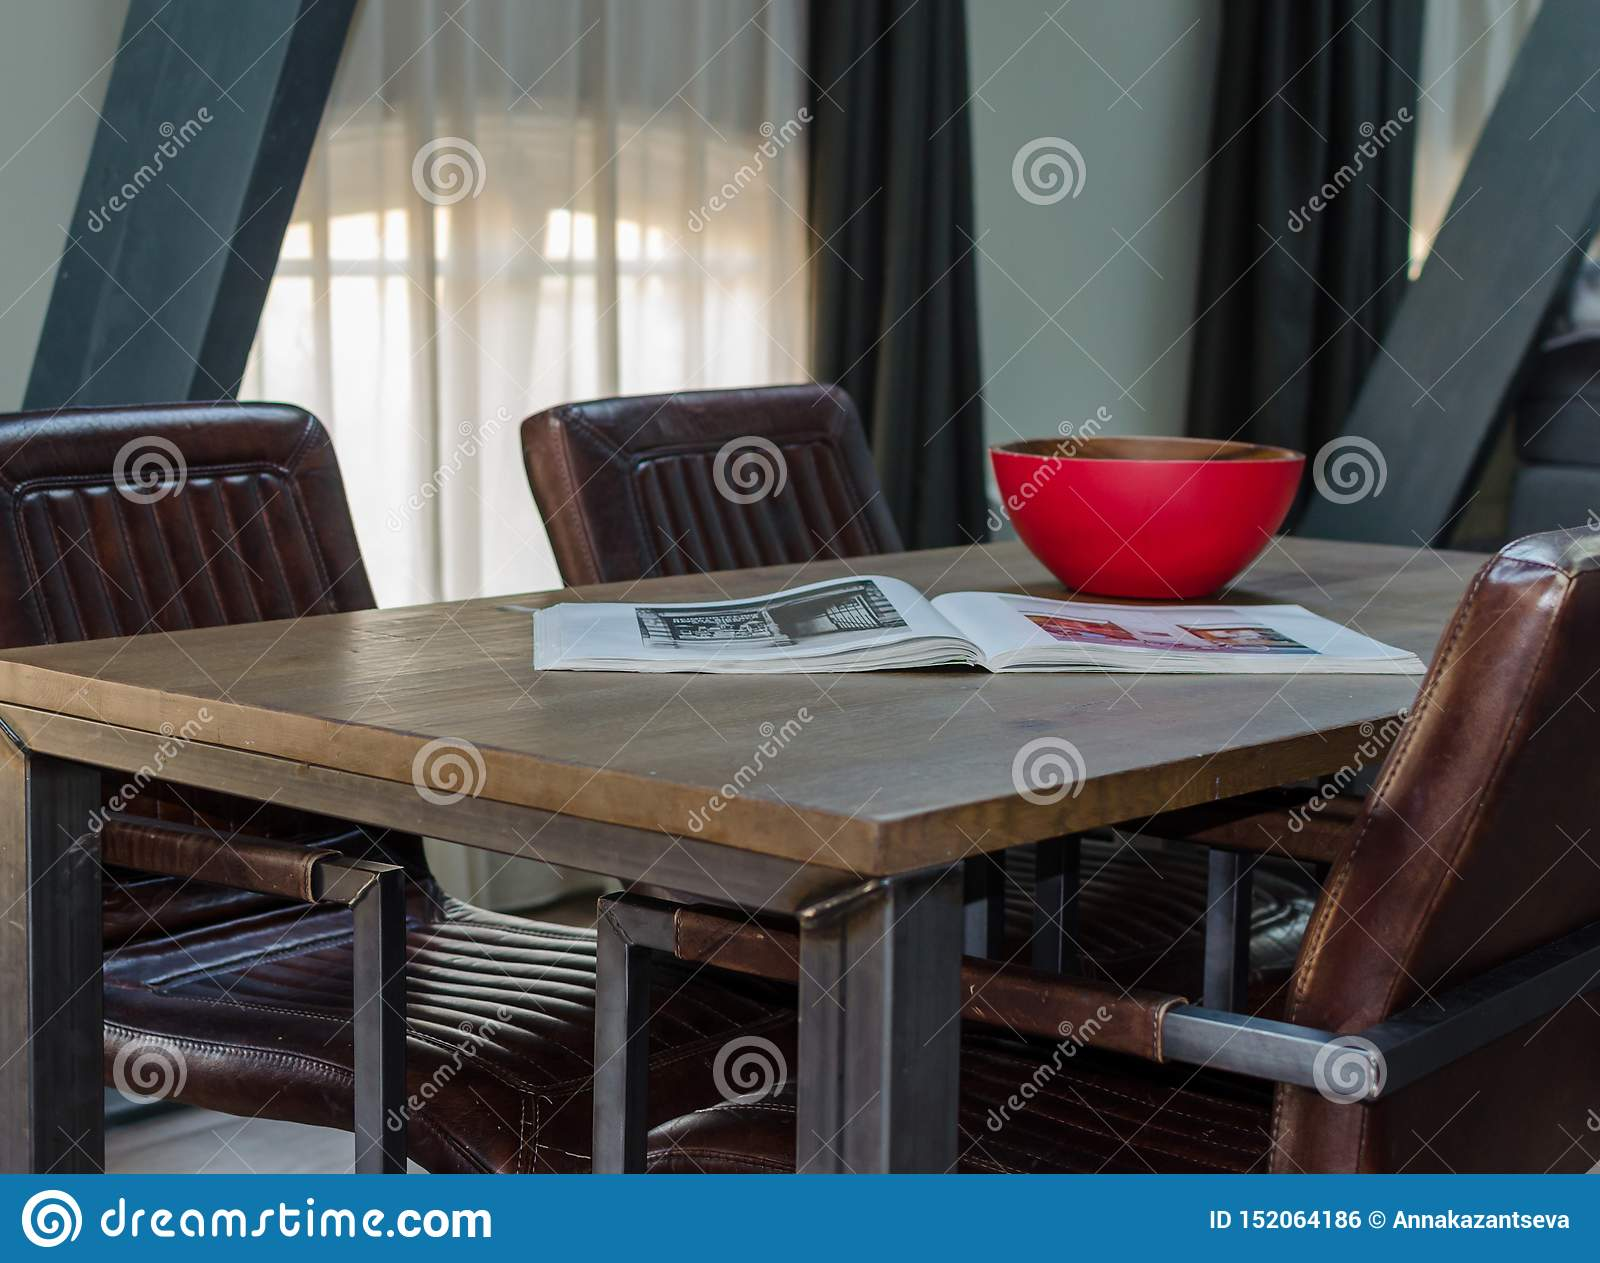 Amsterdam Netherlands May 2019 Wood And Metal Dining Table With Cozy Leather Chairs Wooden Red Bowl And Open Magazine In A Stock Photo Image Of Amsterdam Chair 152064186